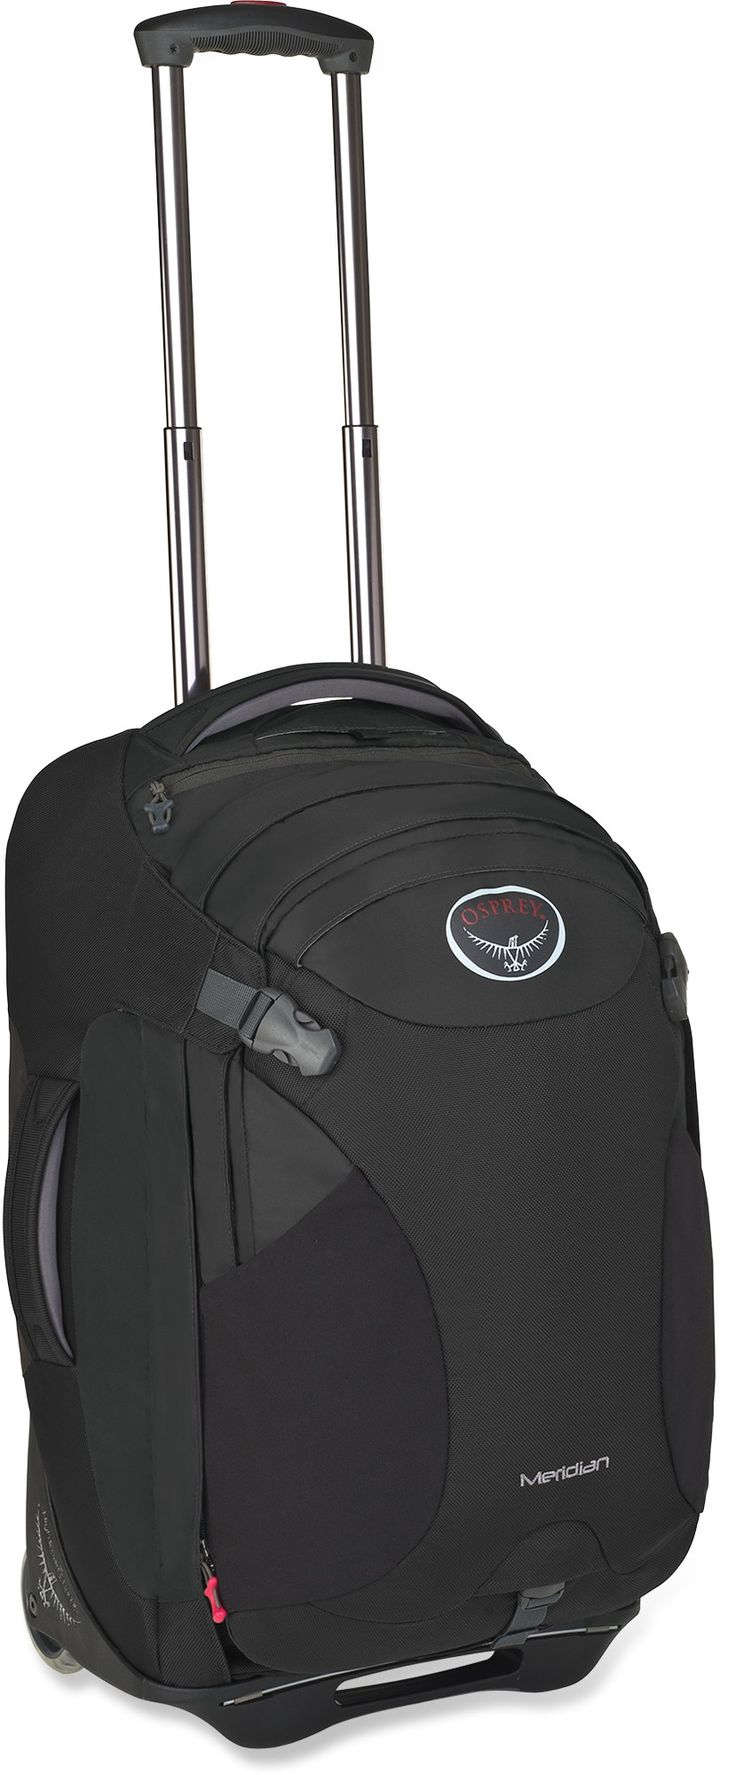 "Osprey Meridian Wheeled Convertible Luggage - 22"" - Free Shipping at REI.com"